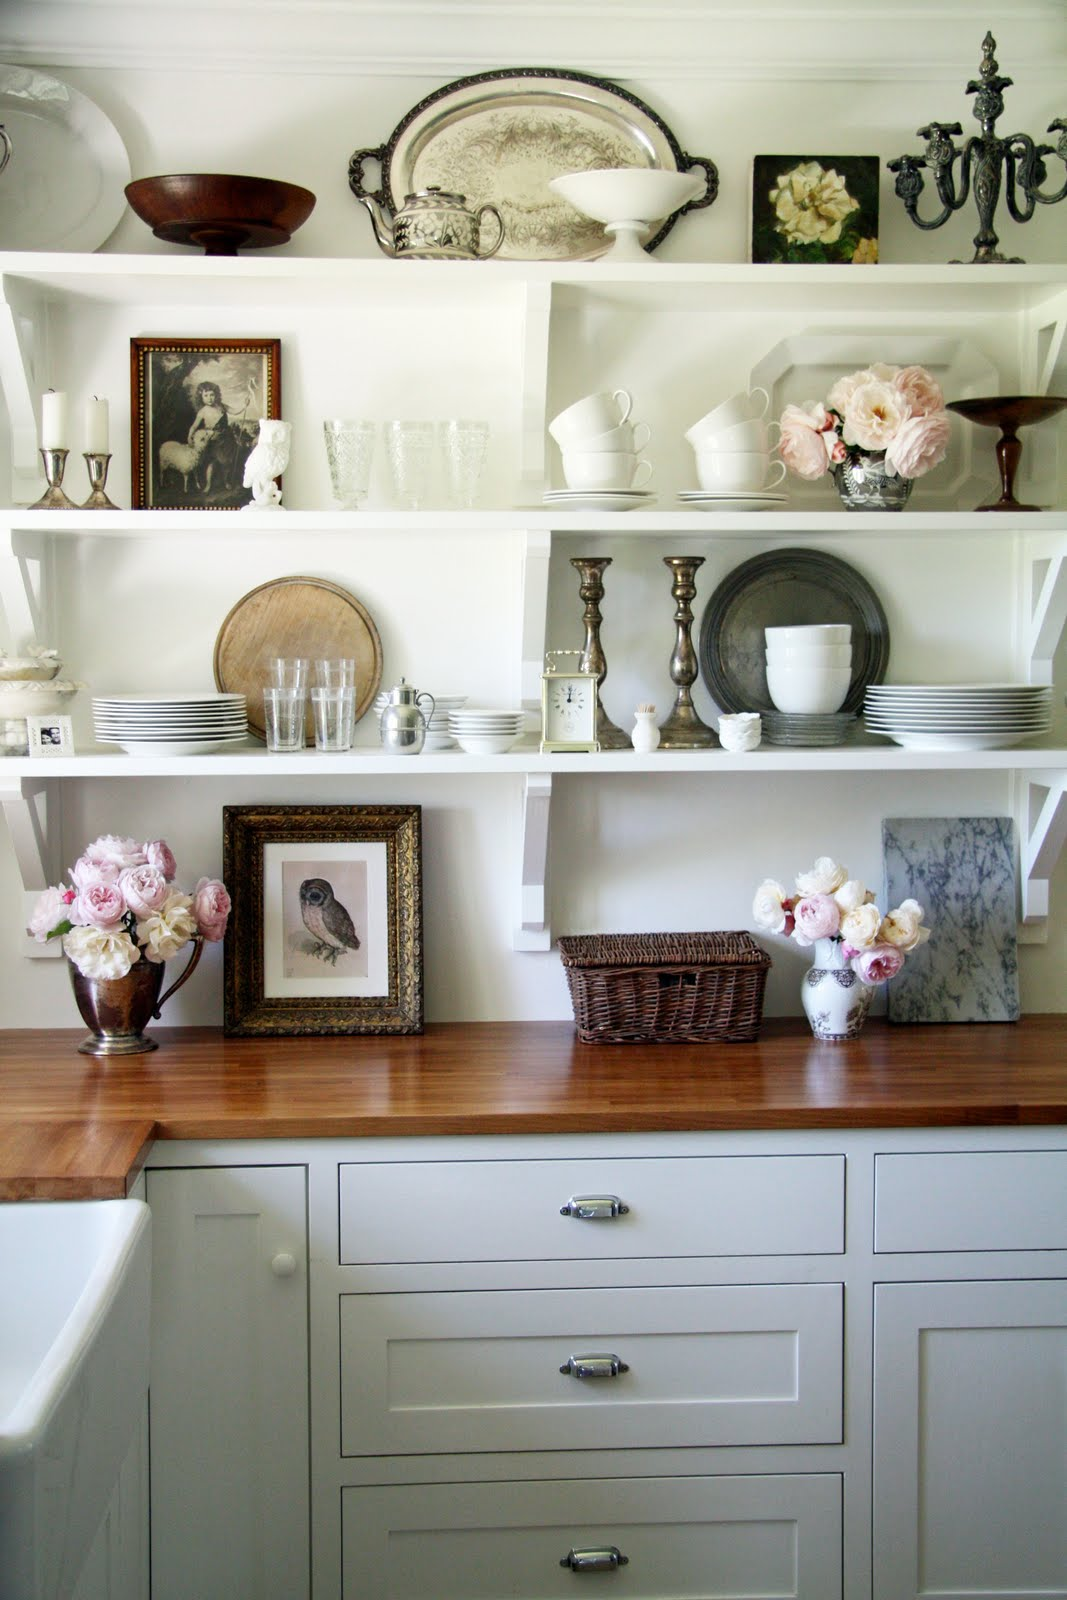 Kitchen Shelves Instead Of Cabinets The Newlywed Diaries The Truth About Open Shelves